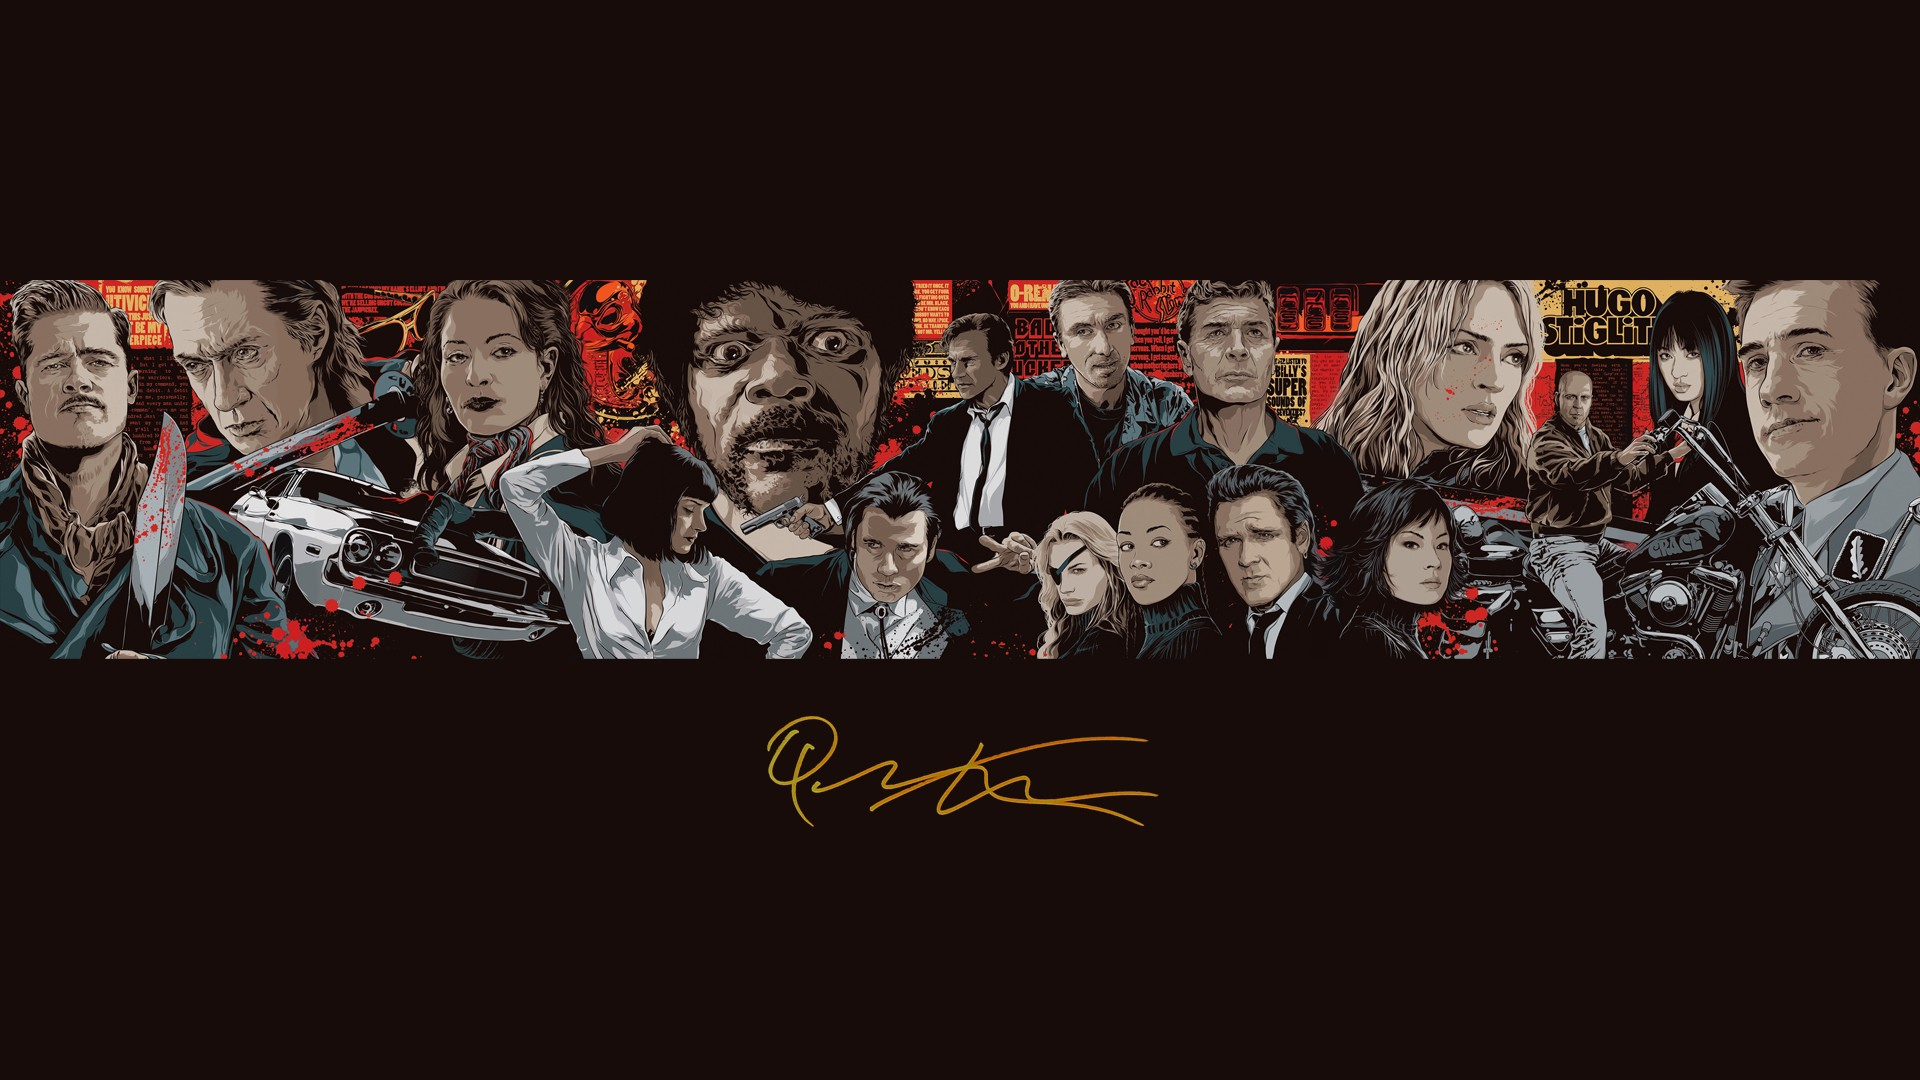 General 1920x1080 Quentin Tarantino movies Inglourious Basterds Pulp Fiction Kill Bill Reservoir Dogs Samuel L. Jackson Brad Pitt John Travolta Uma Thurman Bruce Willis car artwork fan art Vincent Vega Jules Winnfield Gogo Yubari signatures Daryl Hannah Lucy Liu Jackie Brown Michael Madsen Harvey Keitel